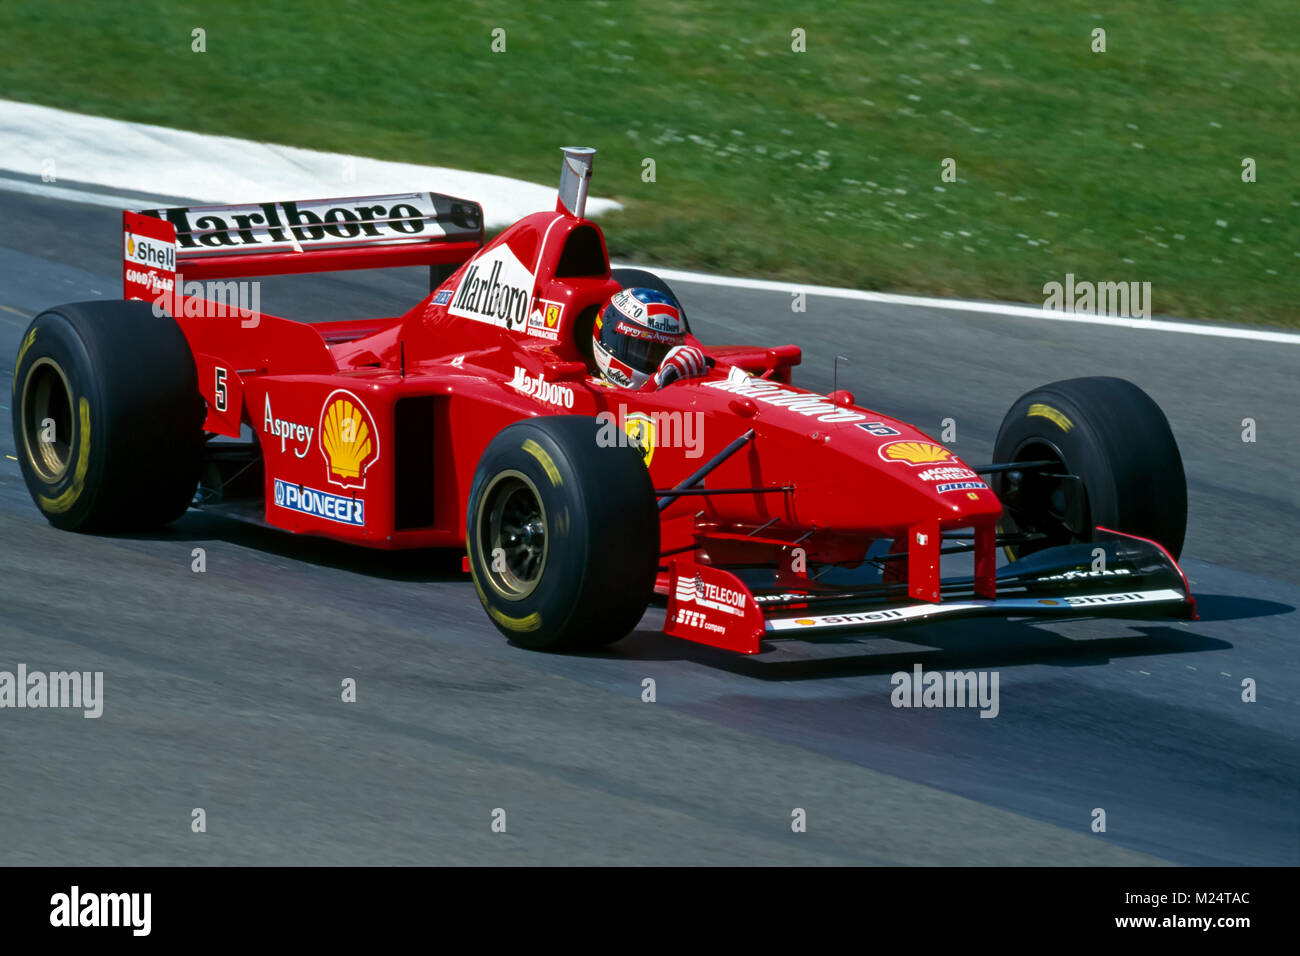 Michael Schumacher Ferrari High Resolution Stock Photography And Images Alamy